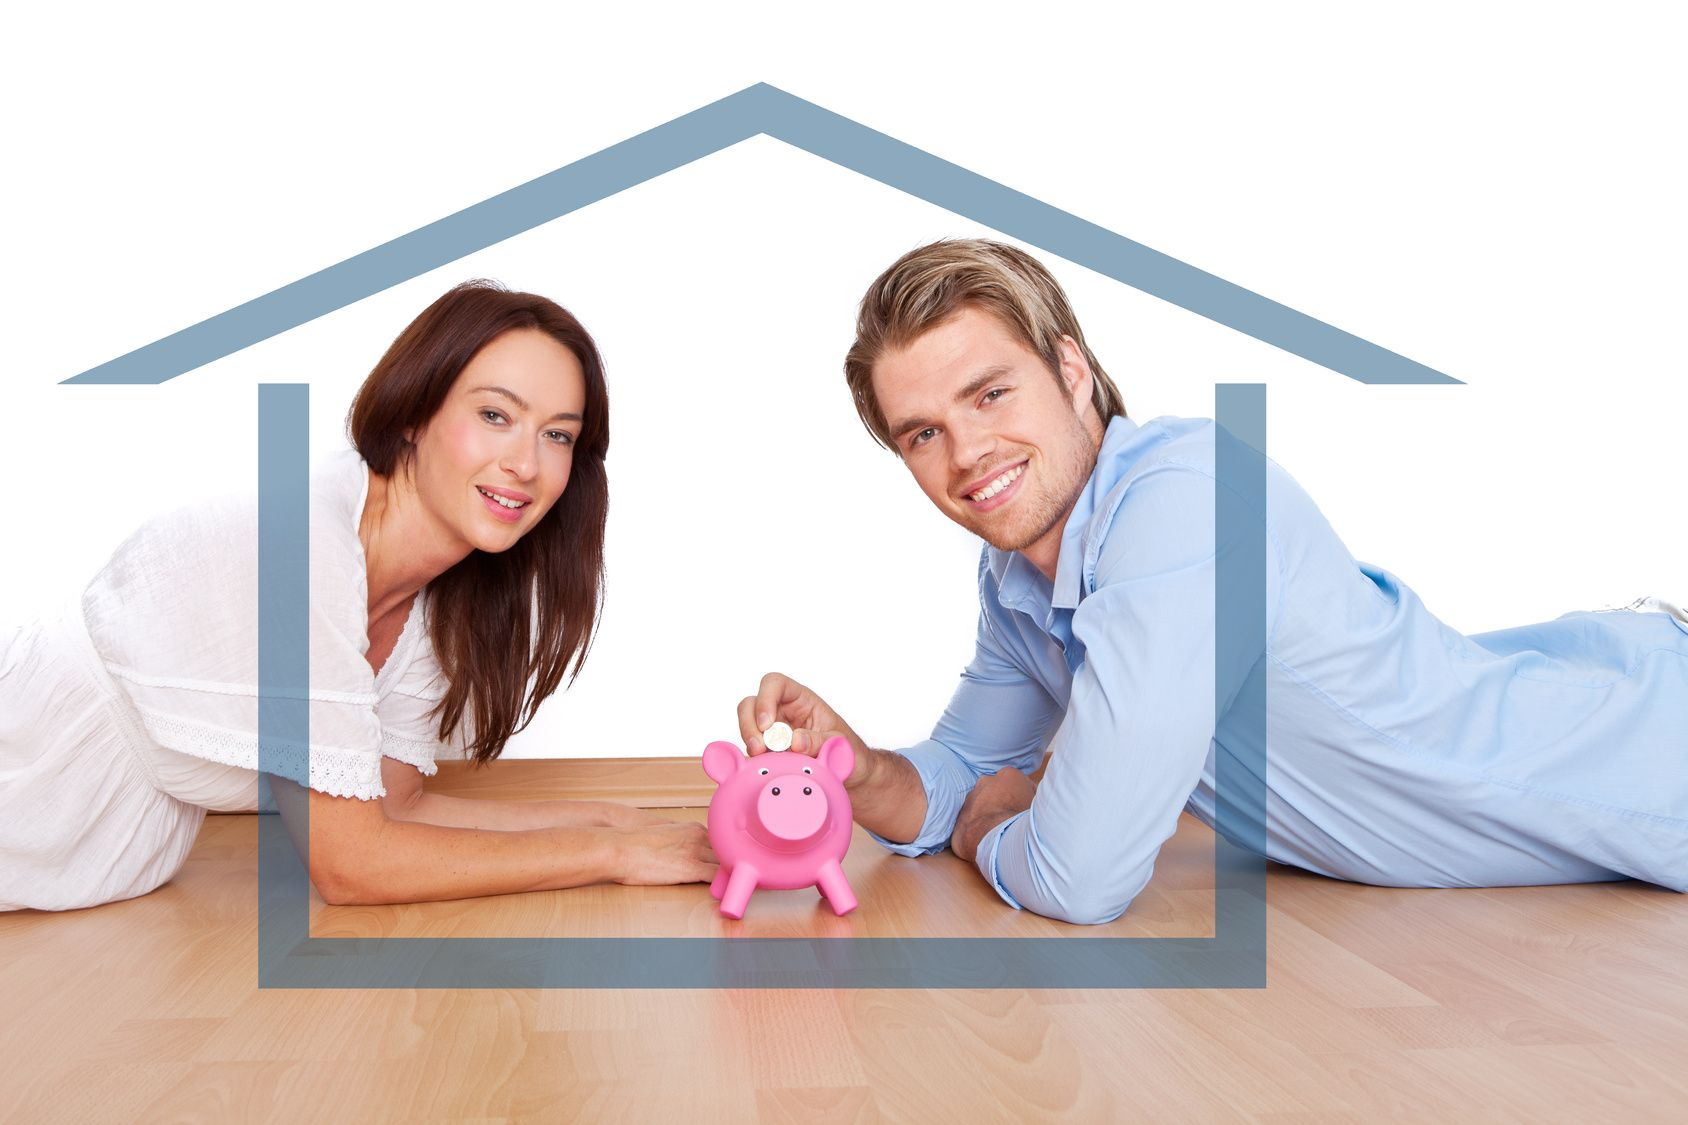 Find About Florida Home Insurance From Liberty Mutual And Get A